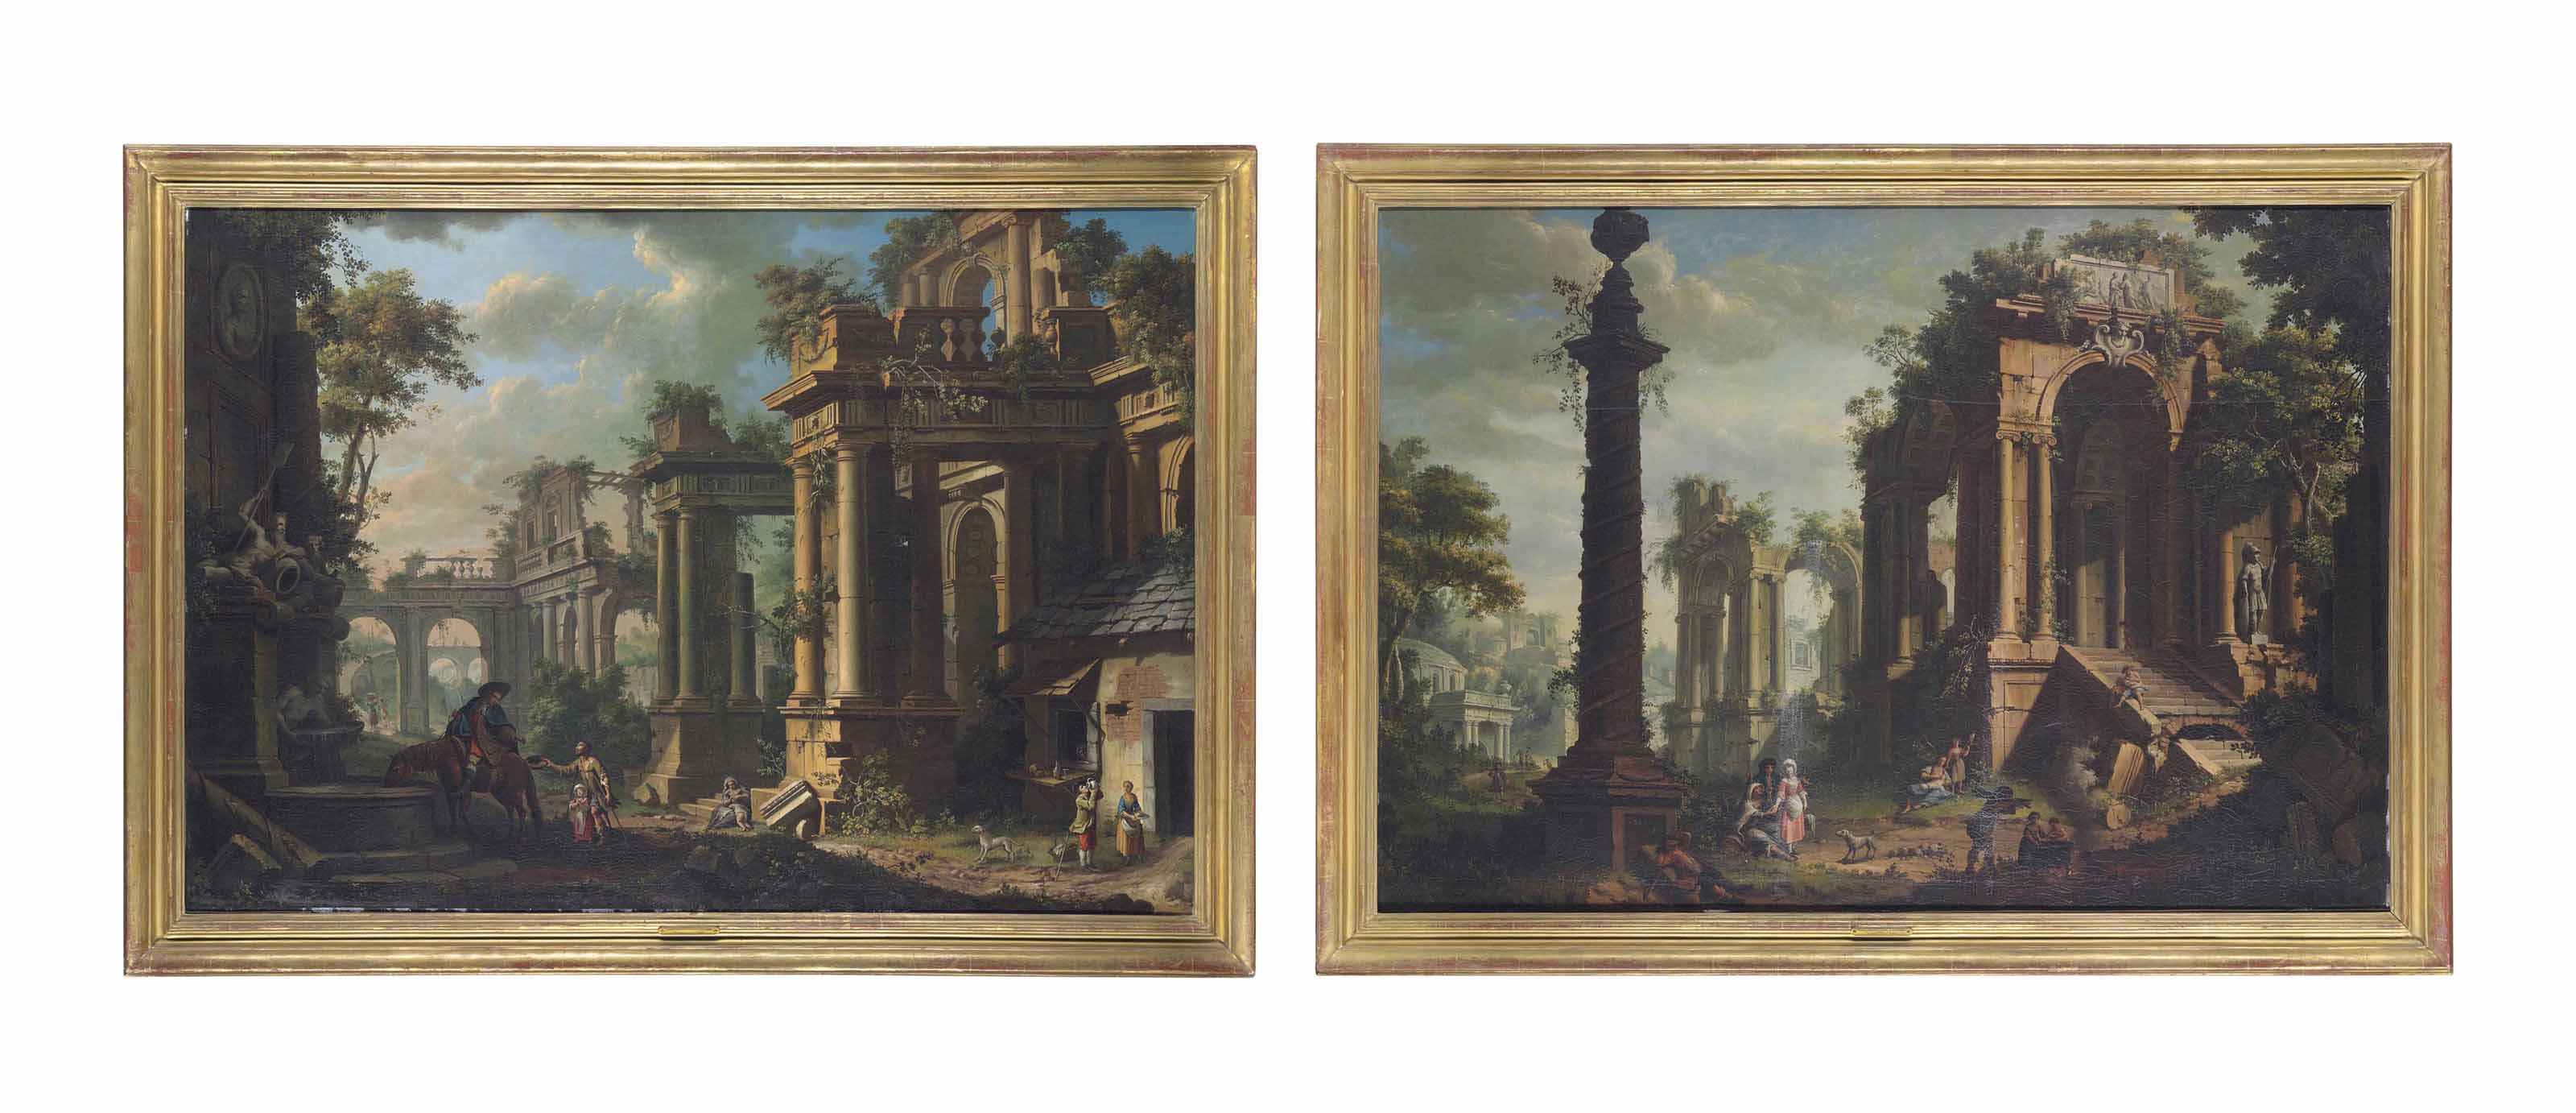 An architectural capriccio with a horseman and figures by a fountain; and An architectural capriccio with figures resting by a column